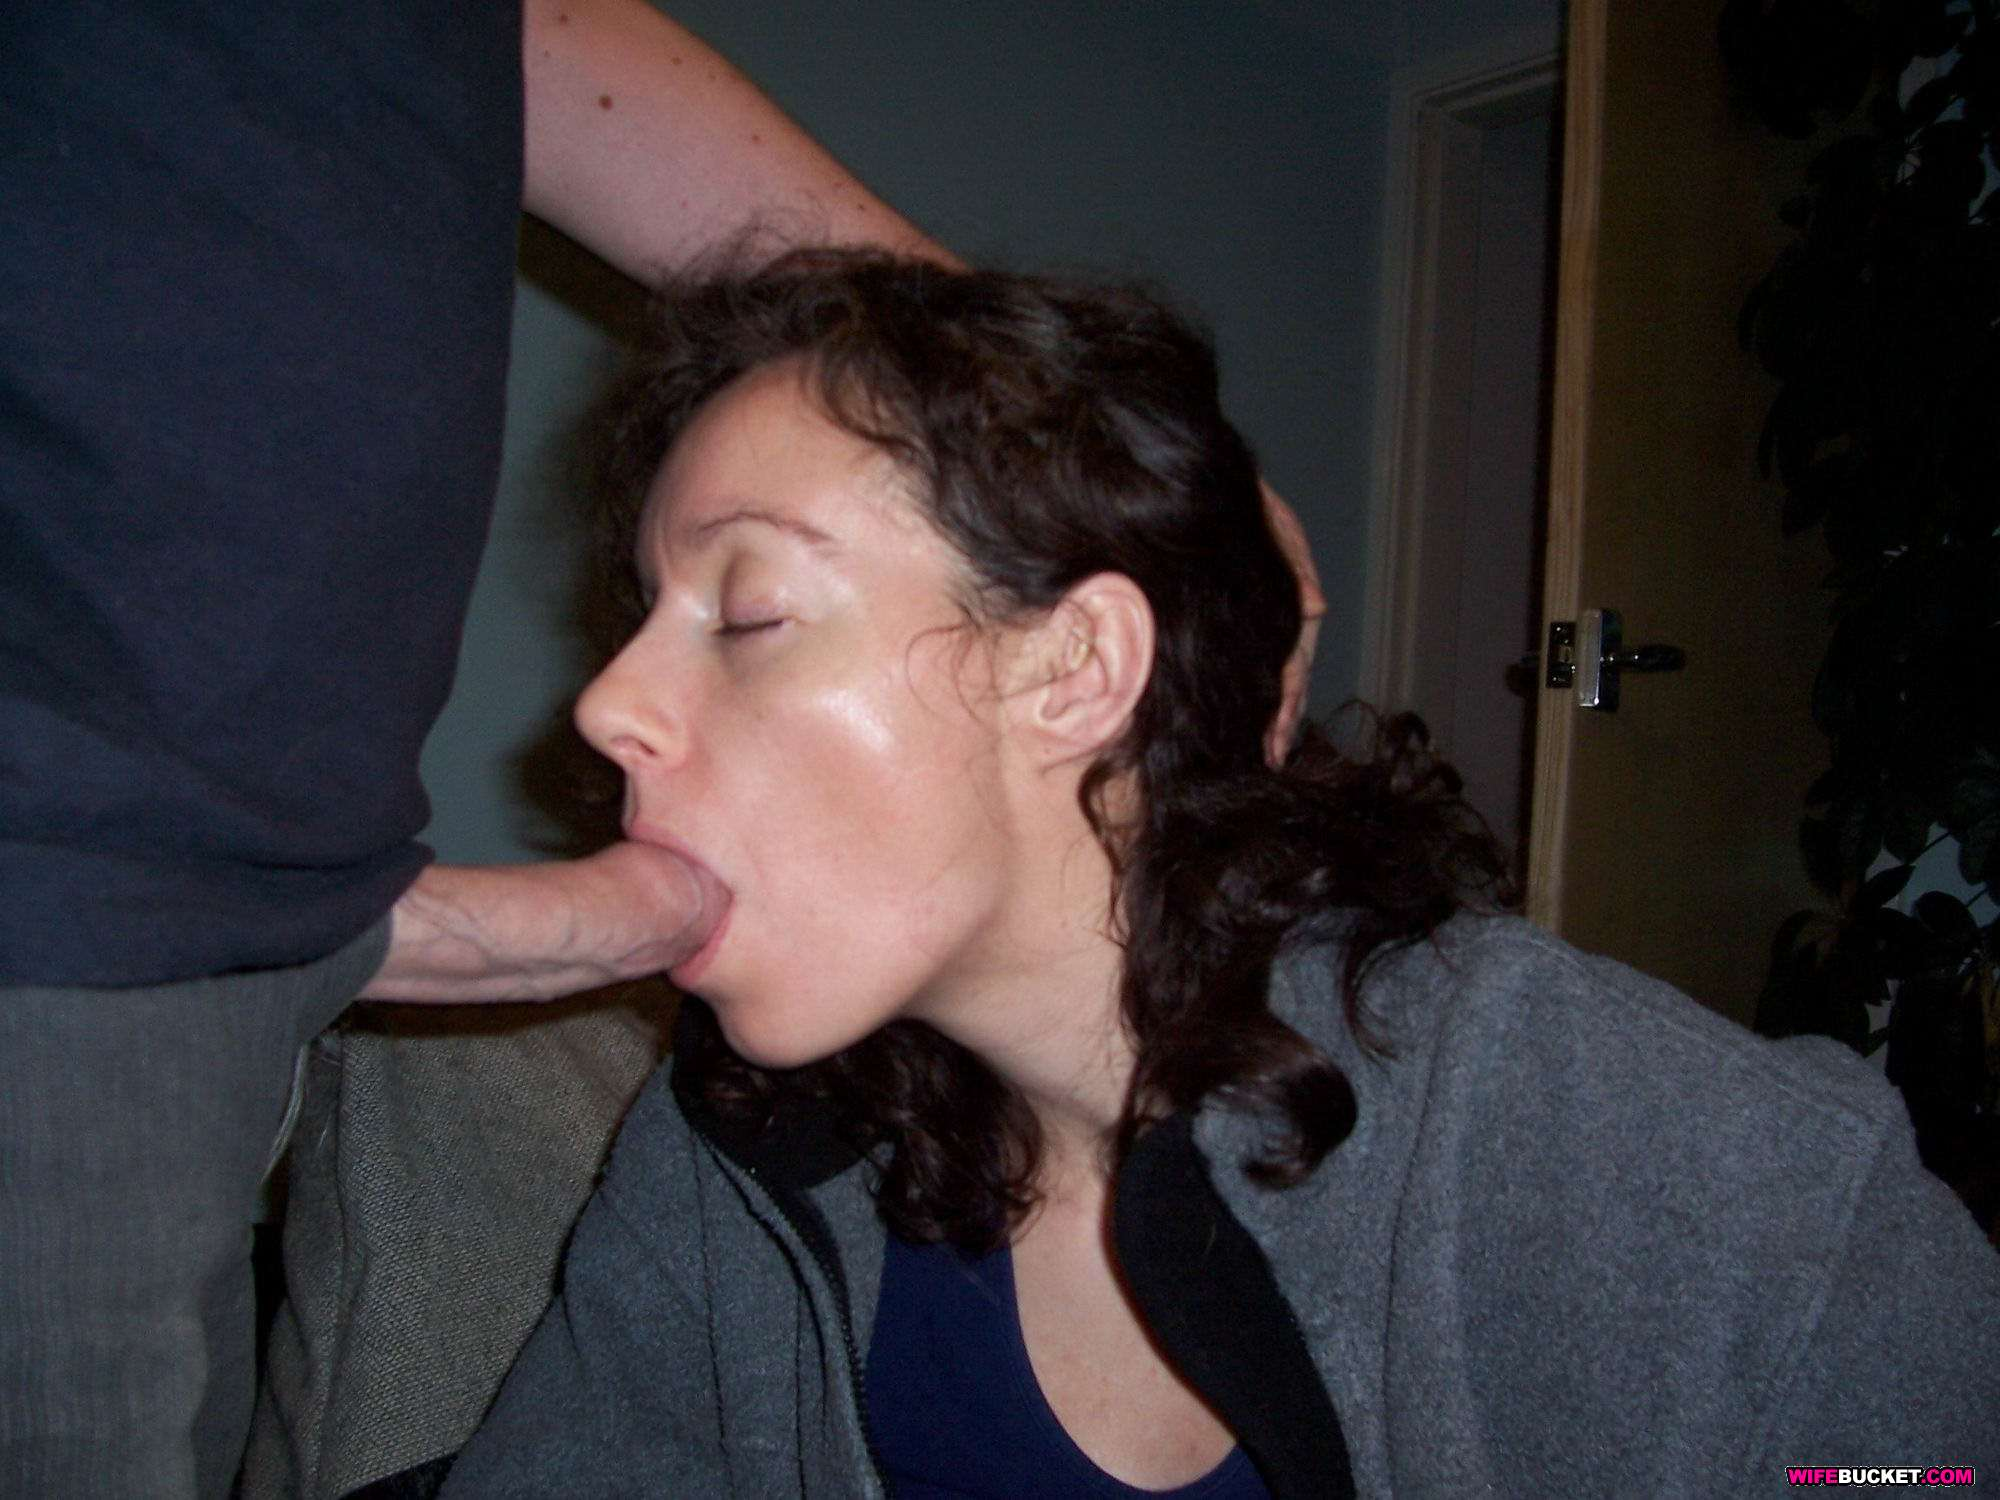 Wife Bucket Real amateur MILFs, wives, and moms! Swingers too 1024 x ...